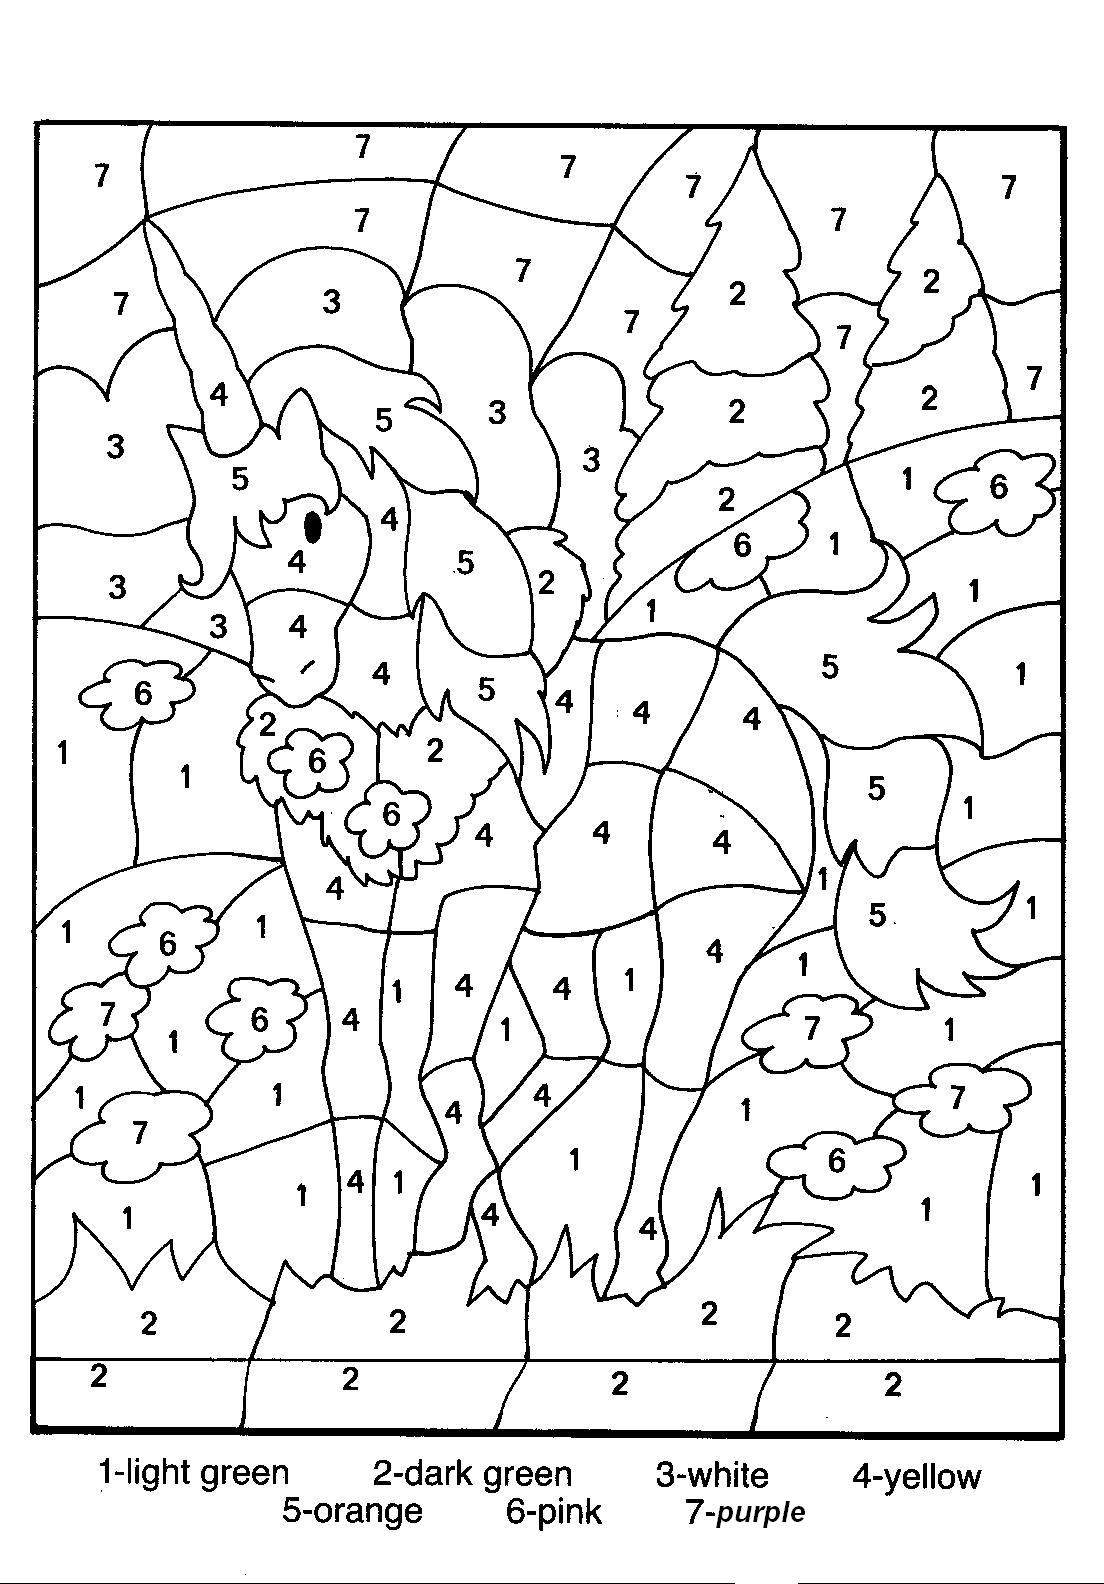 Free Printable Color by Number Coloring Pages Best Coloring – Number Coloring Worksheets for Kindergarten